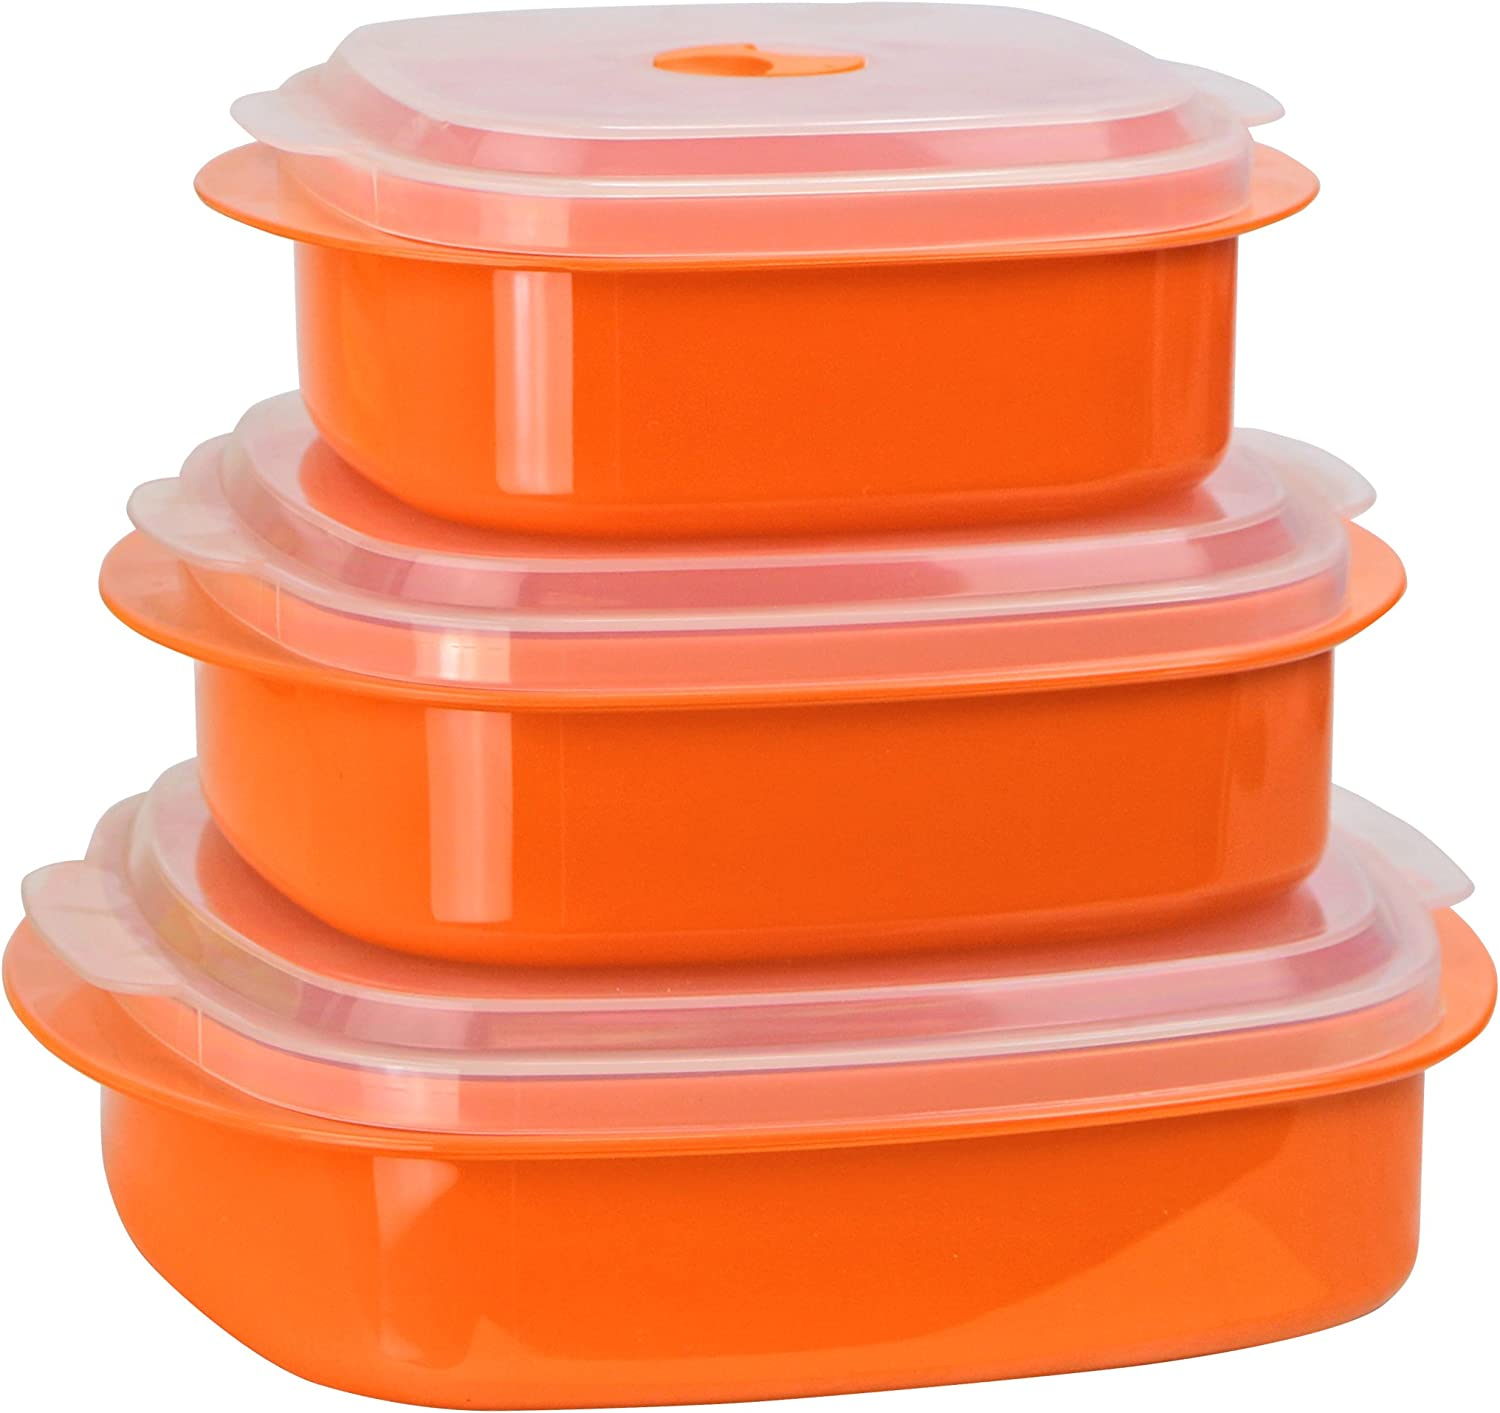 Calypso Basics by Reston Lloyd 6-Piece Microwave Cookware, Steamer and Storage Set, Orange